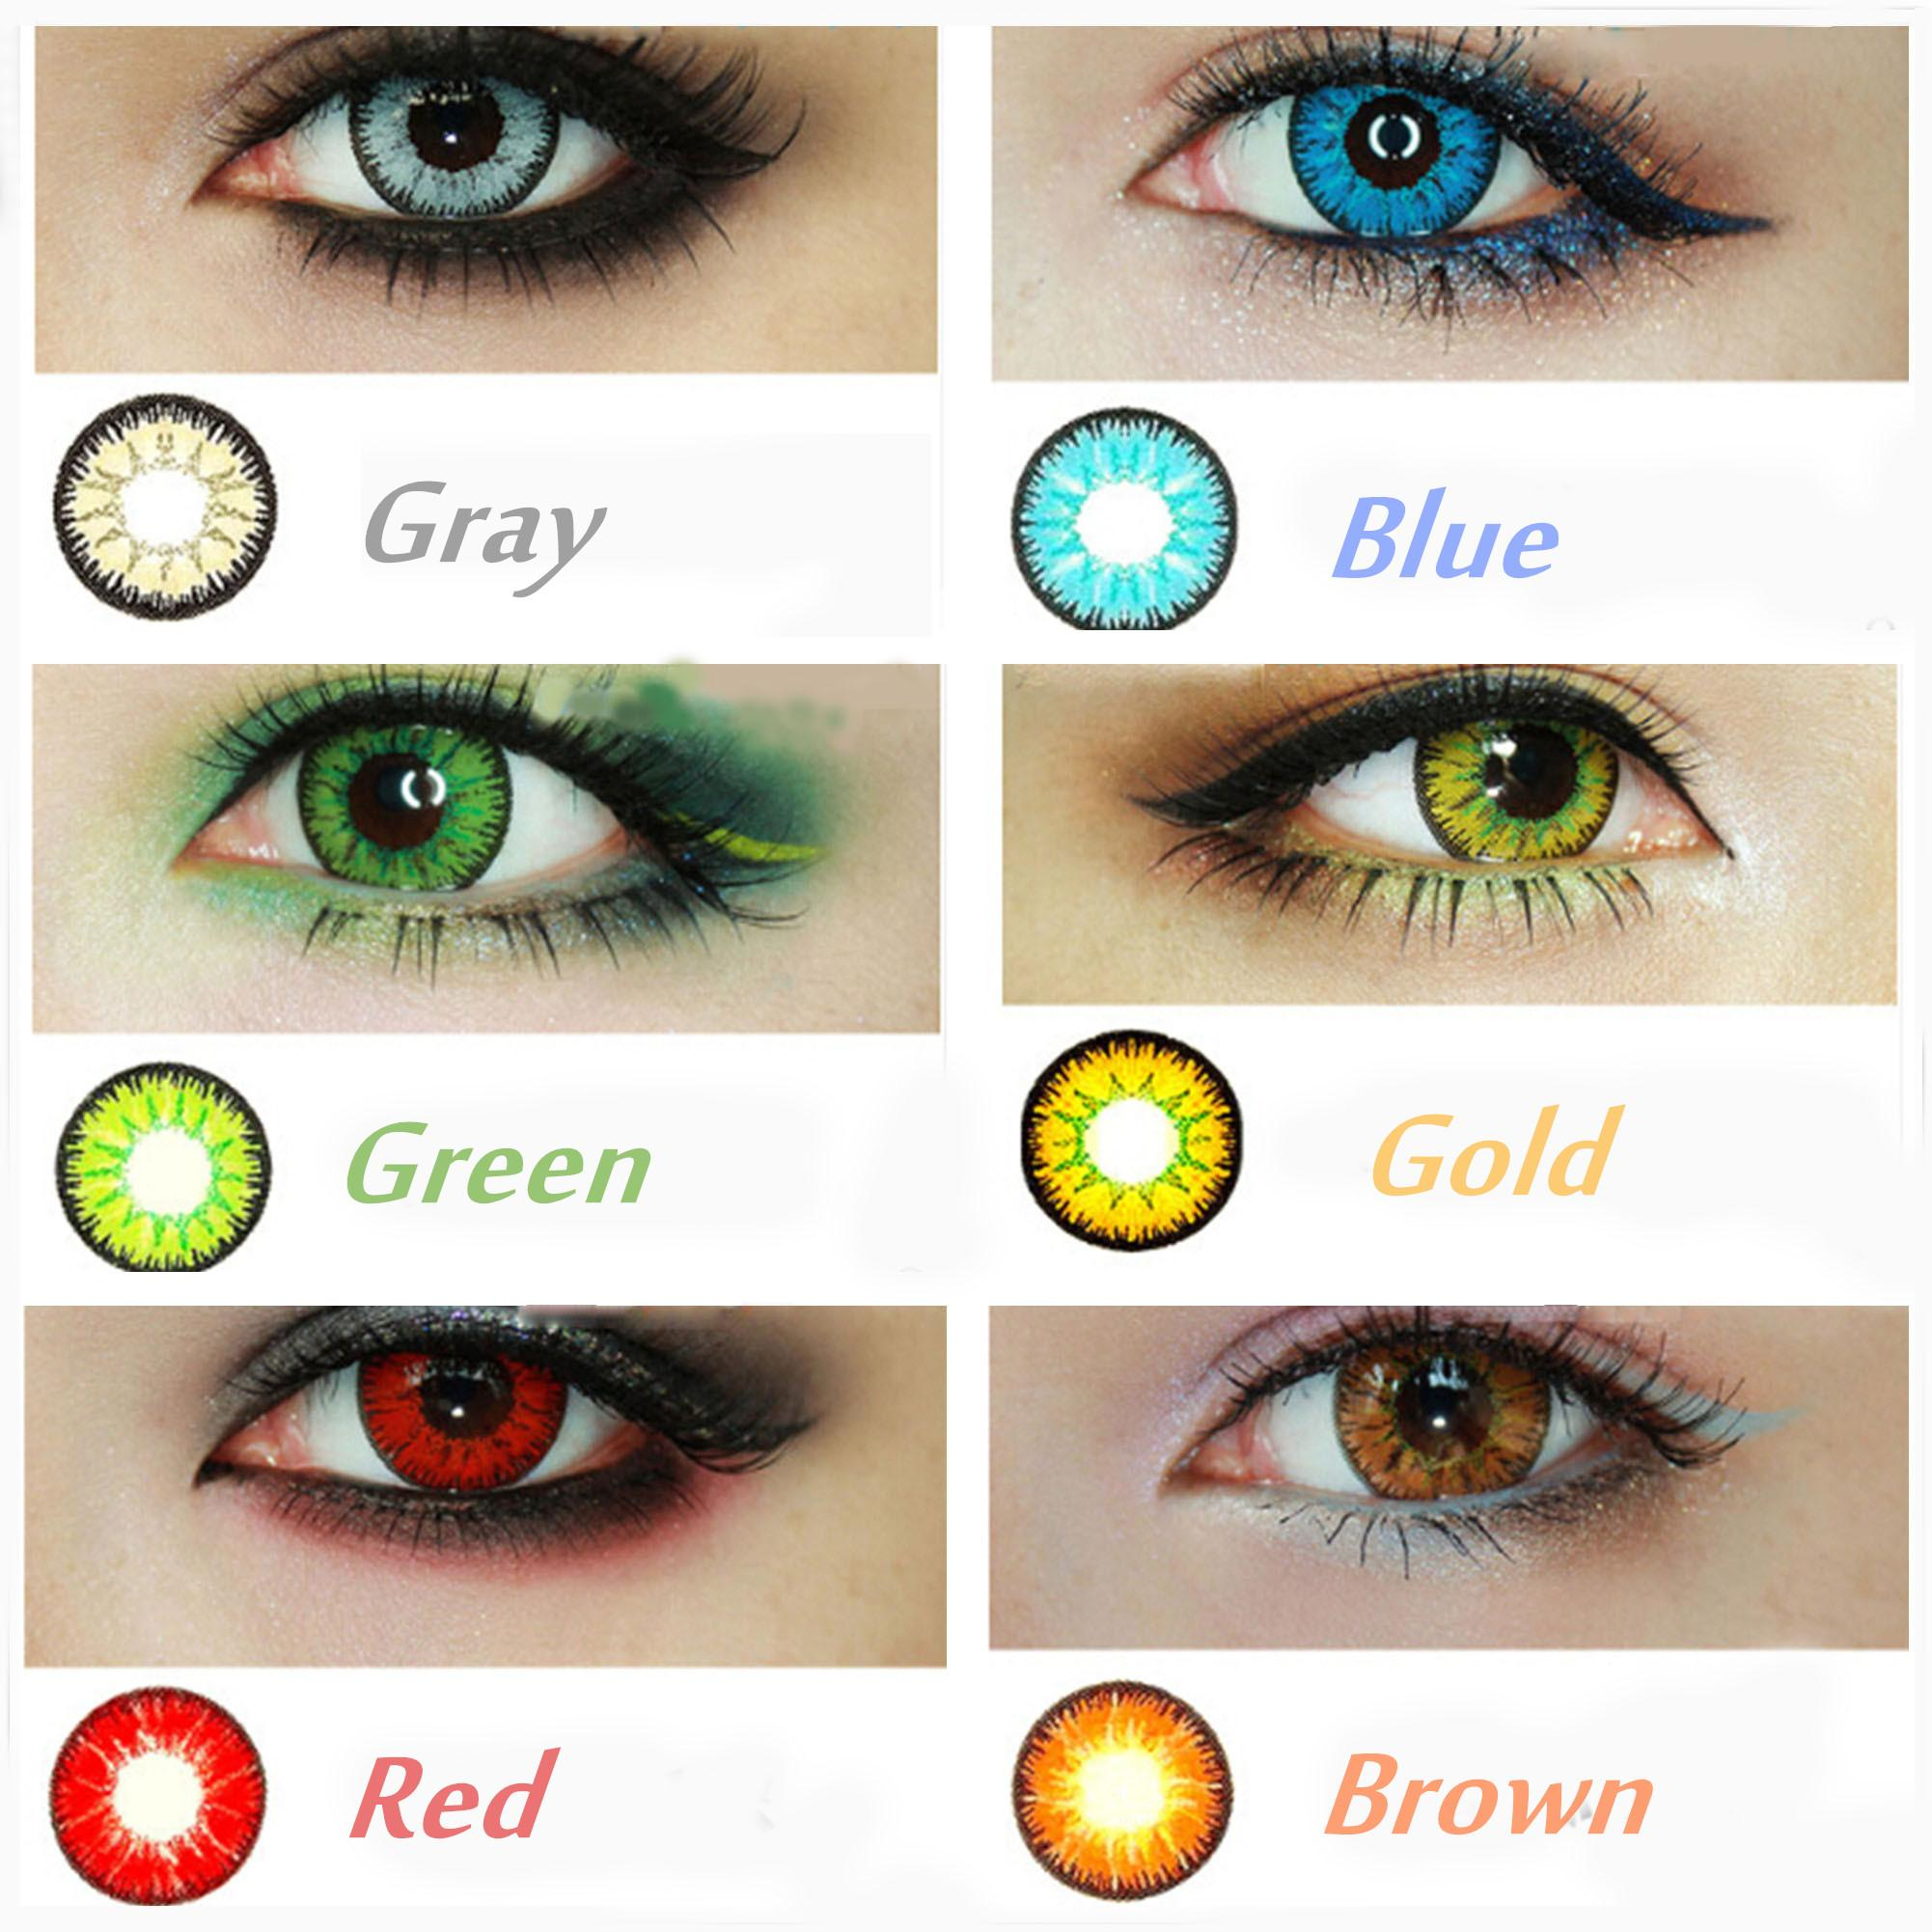 Crazy Halloween Contacts coloured contact lenses Wholesale Candyvision Colors In Stock Crazy Lenses Colorful Cosmetic Contact Lenses Eye Color Blood Red Eye